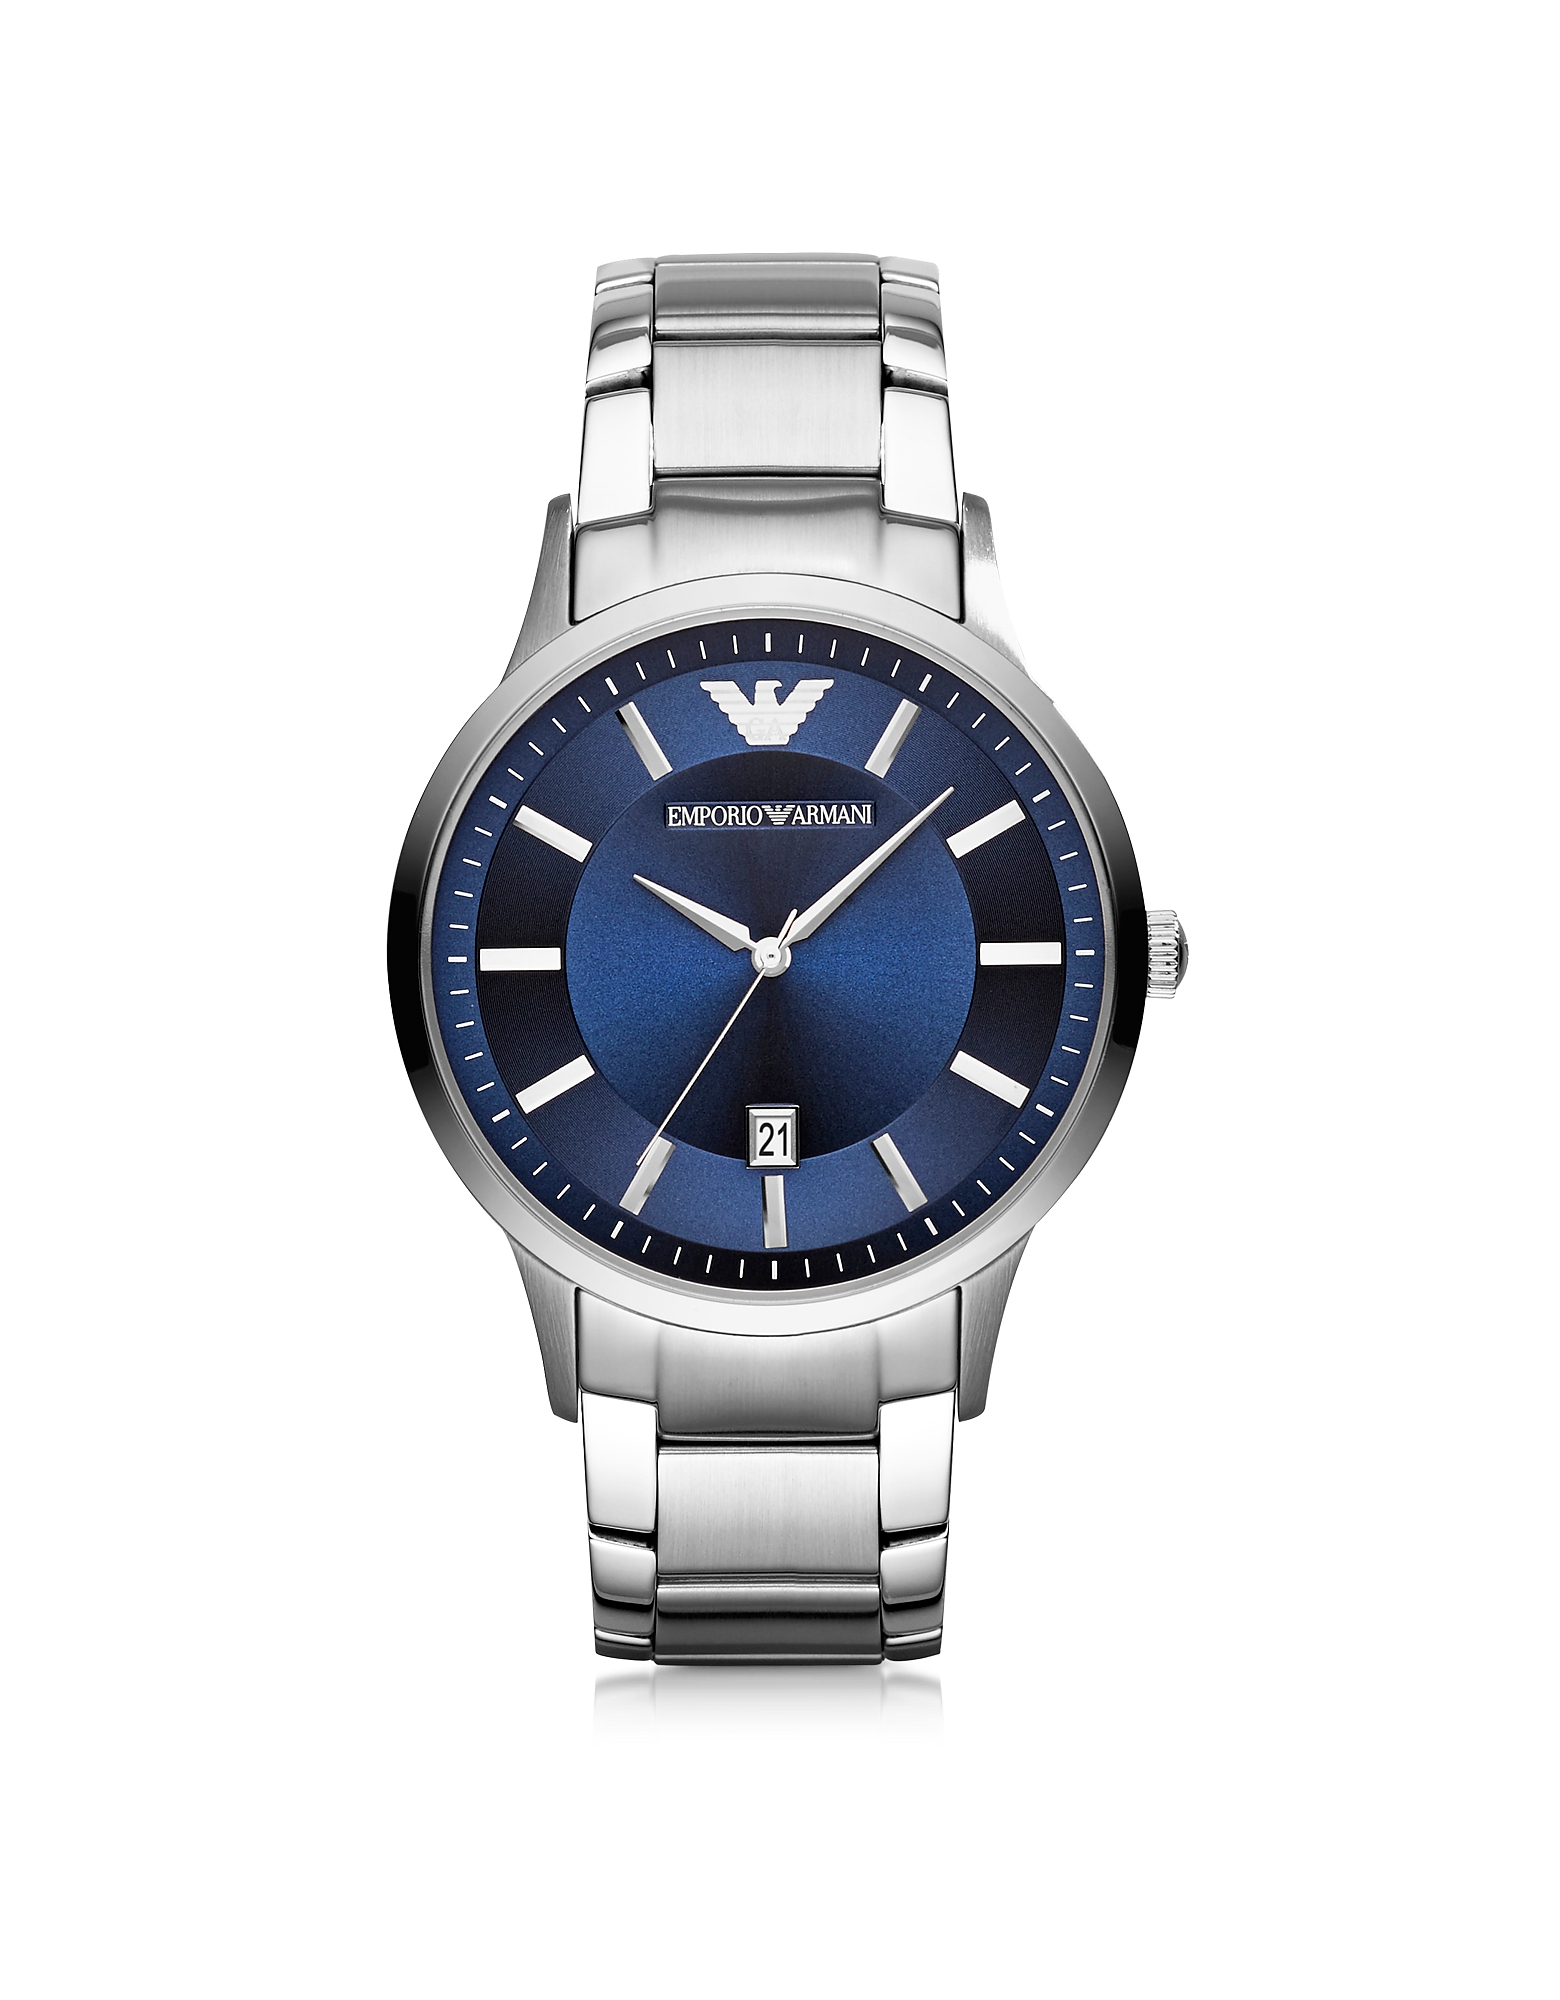 Silver Tone Stainless Steel Men's Watch w/Blue Dial от Forzieri.com INT